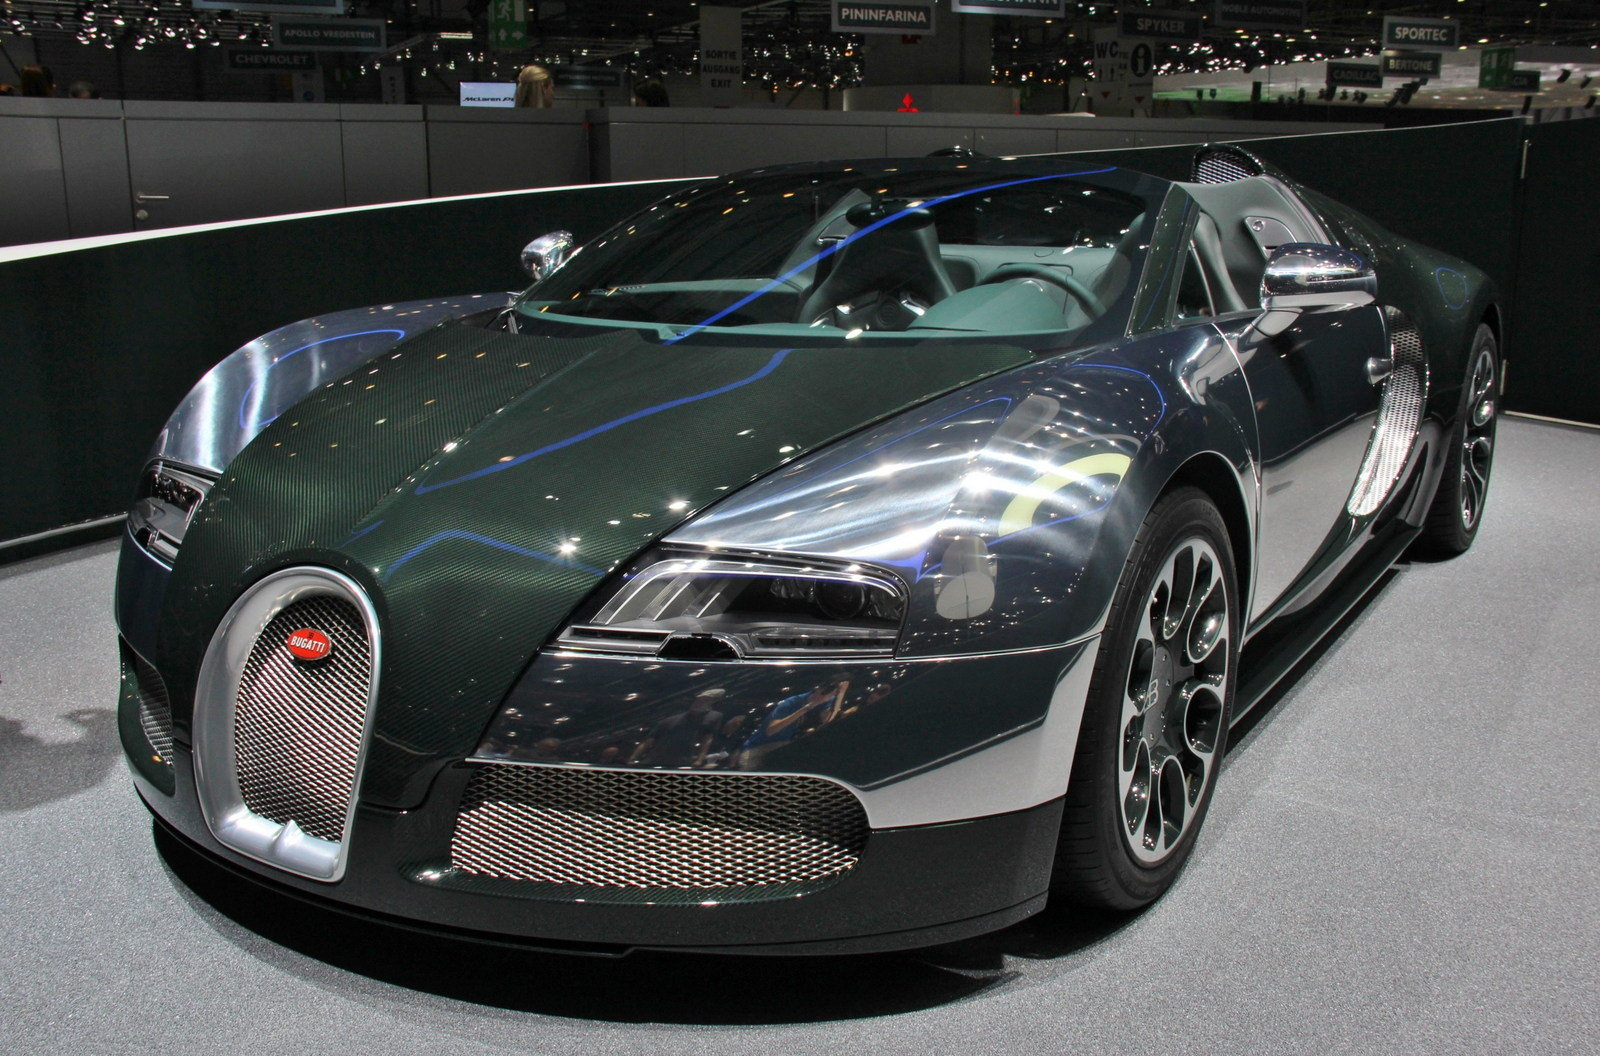 2013 bugatti veyron 16 4 grand sport green carbon picture 497049 car review top speed. Black Bedroom Furniture Sets. Home Design Ideas